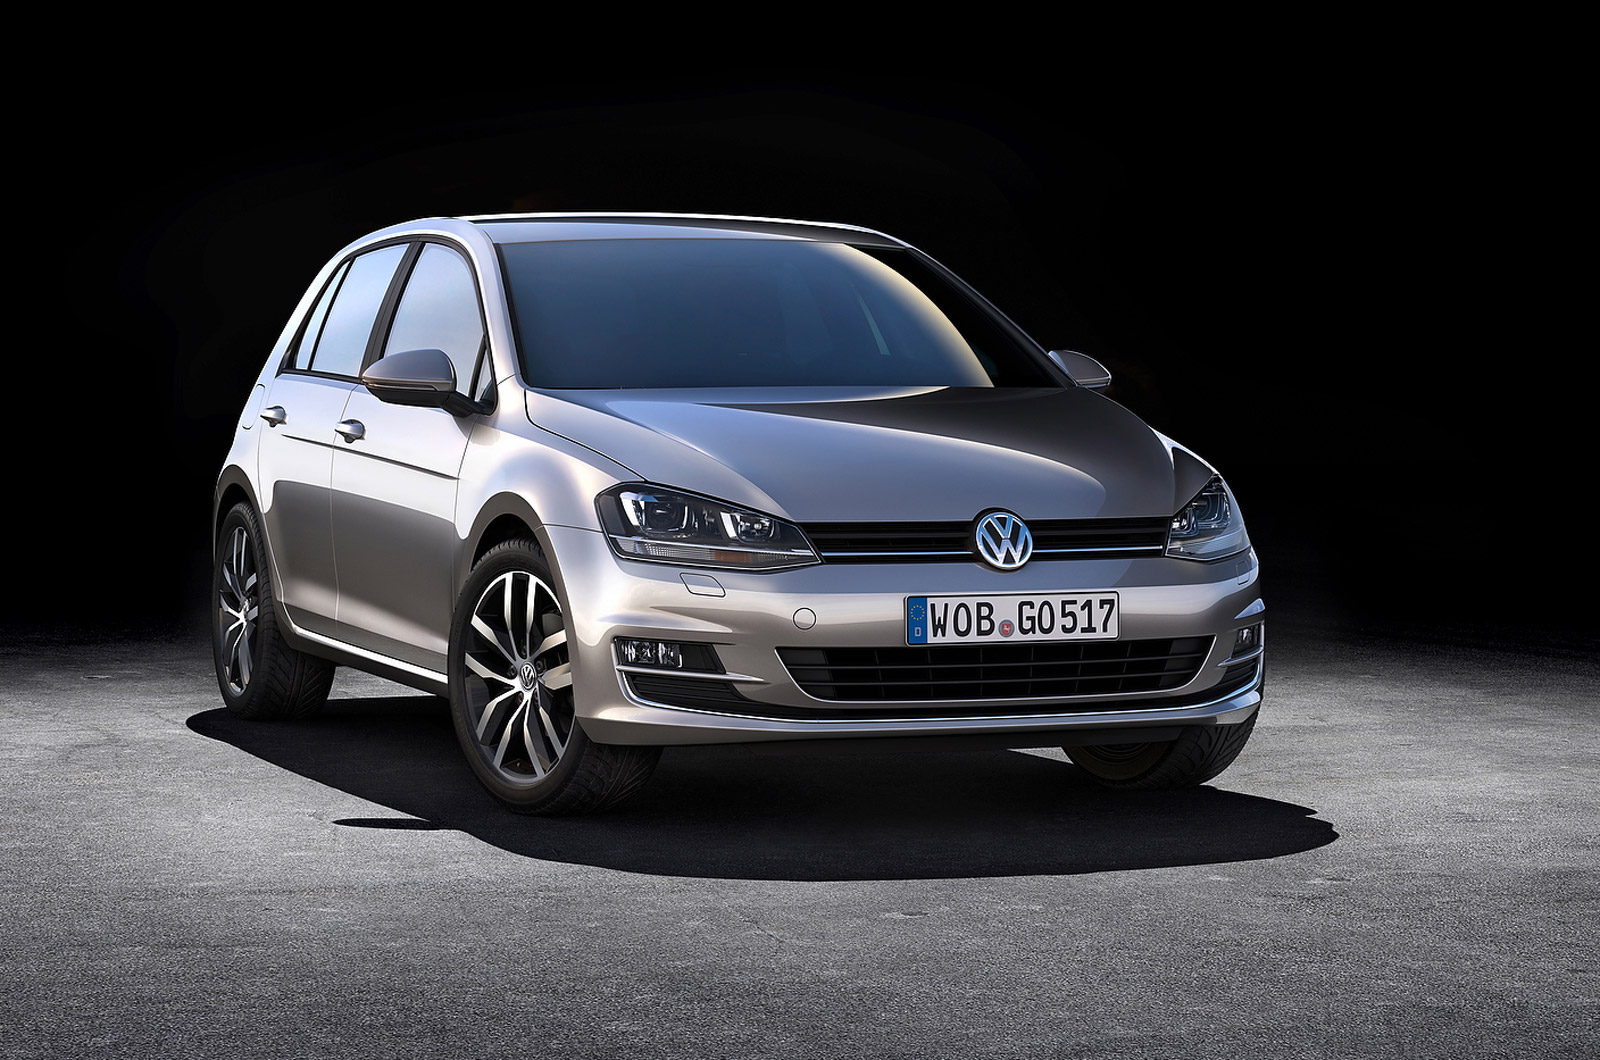 volkswagen golf mk7 engine line up announced autocar. Black Bedroom Furniture Sets. Home Design Ideas